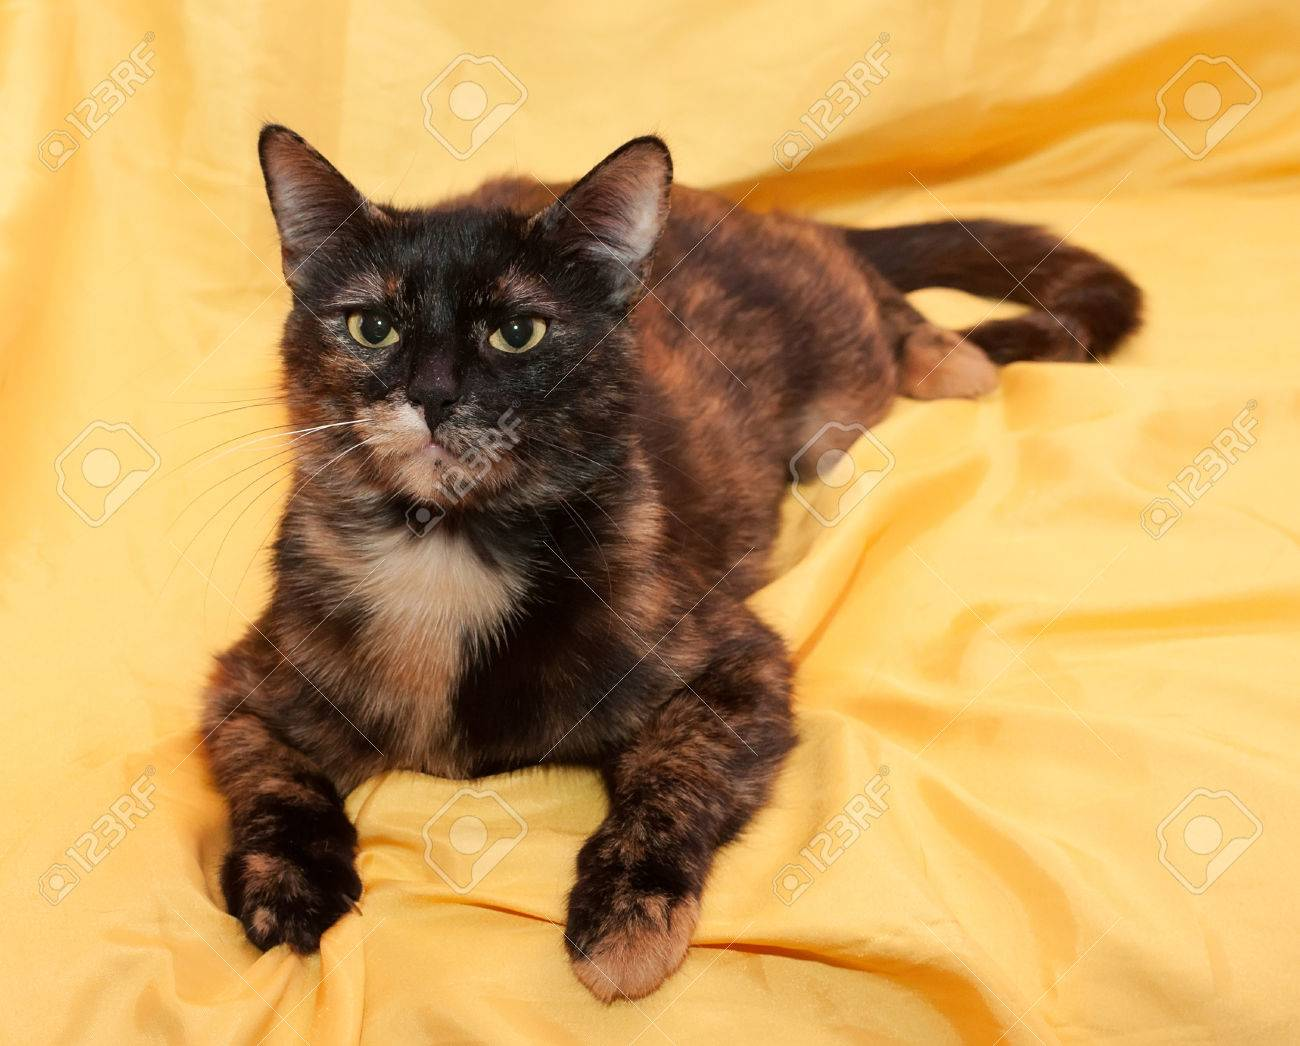 Black And Red Cat Lies On Yellow Background Stock Photo Picture And Royalty Free Image Image 29109987